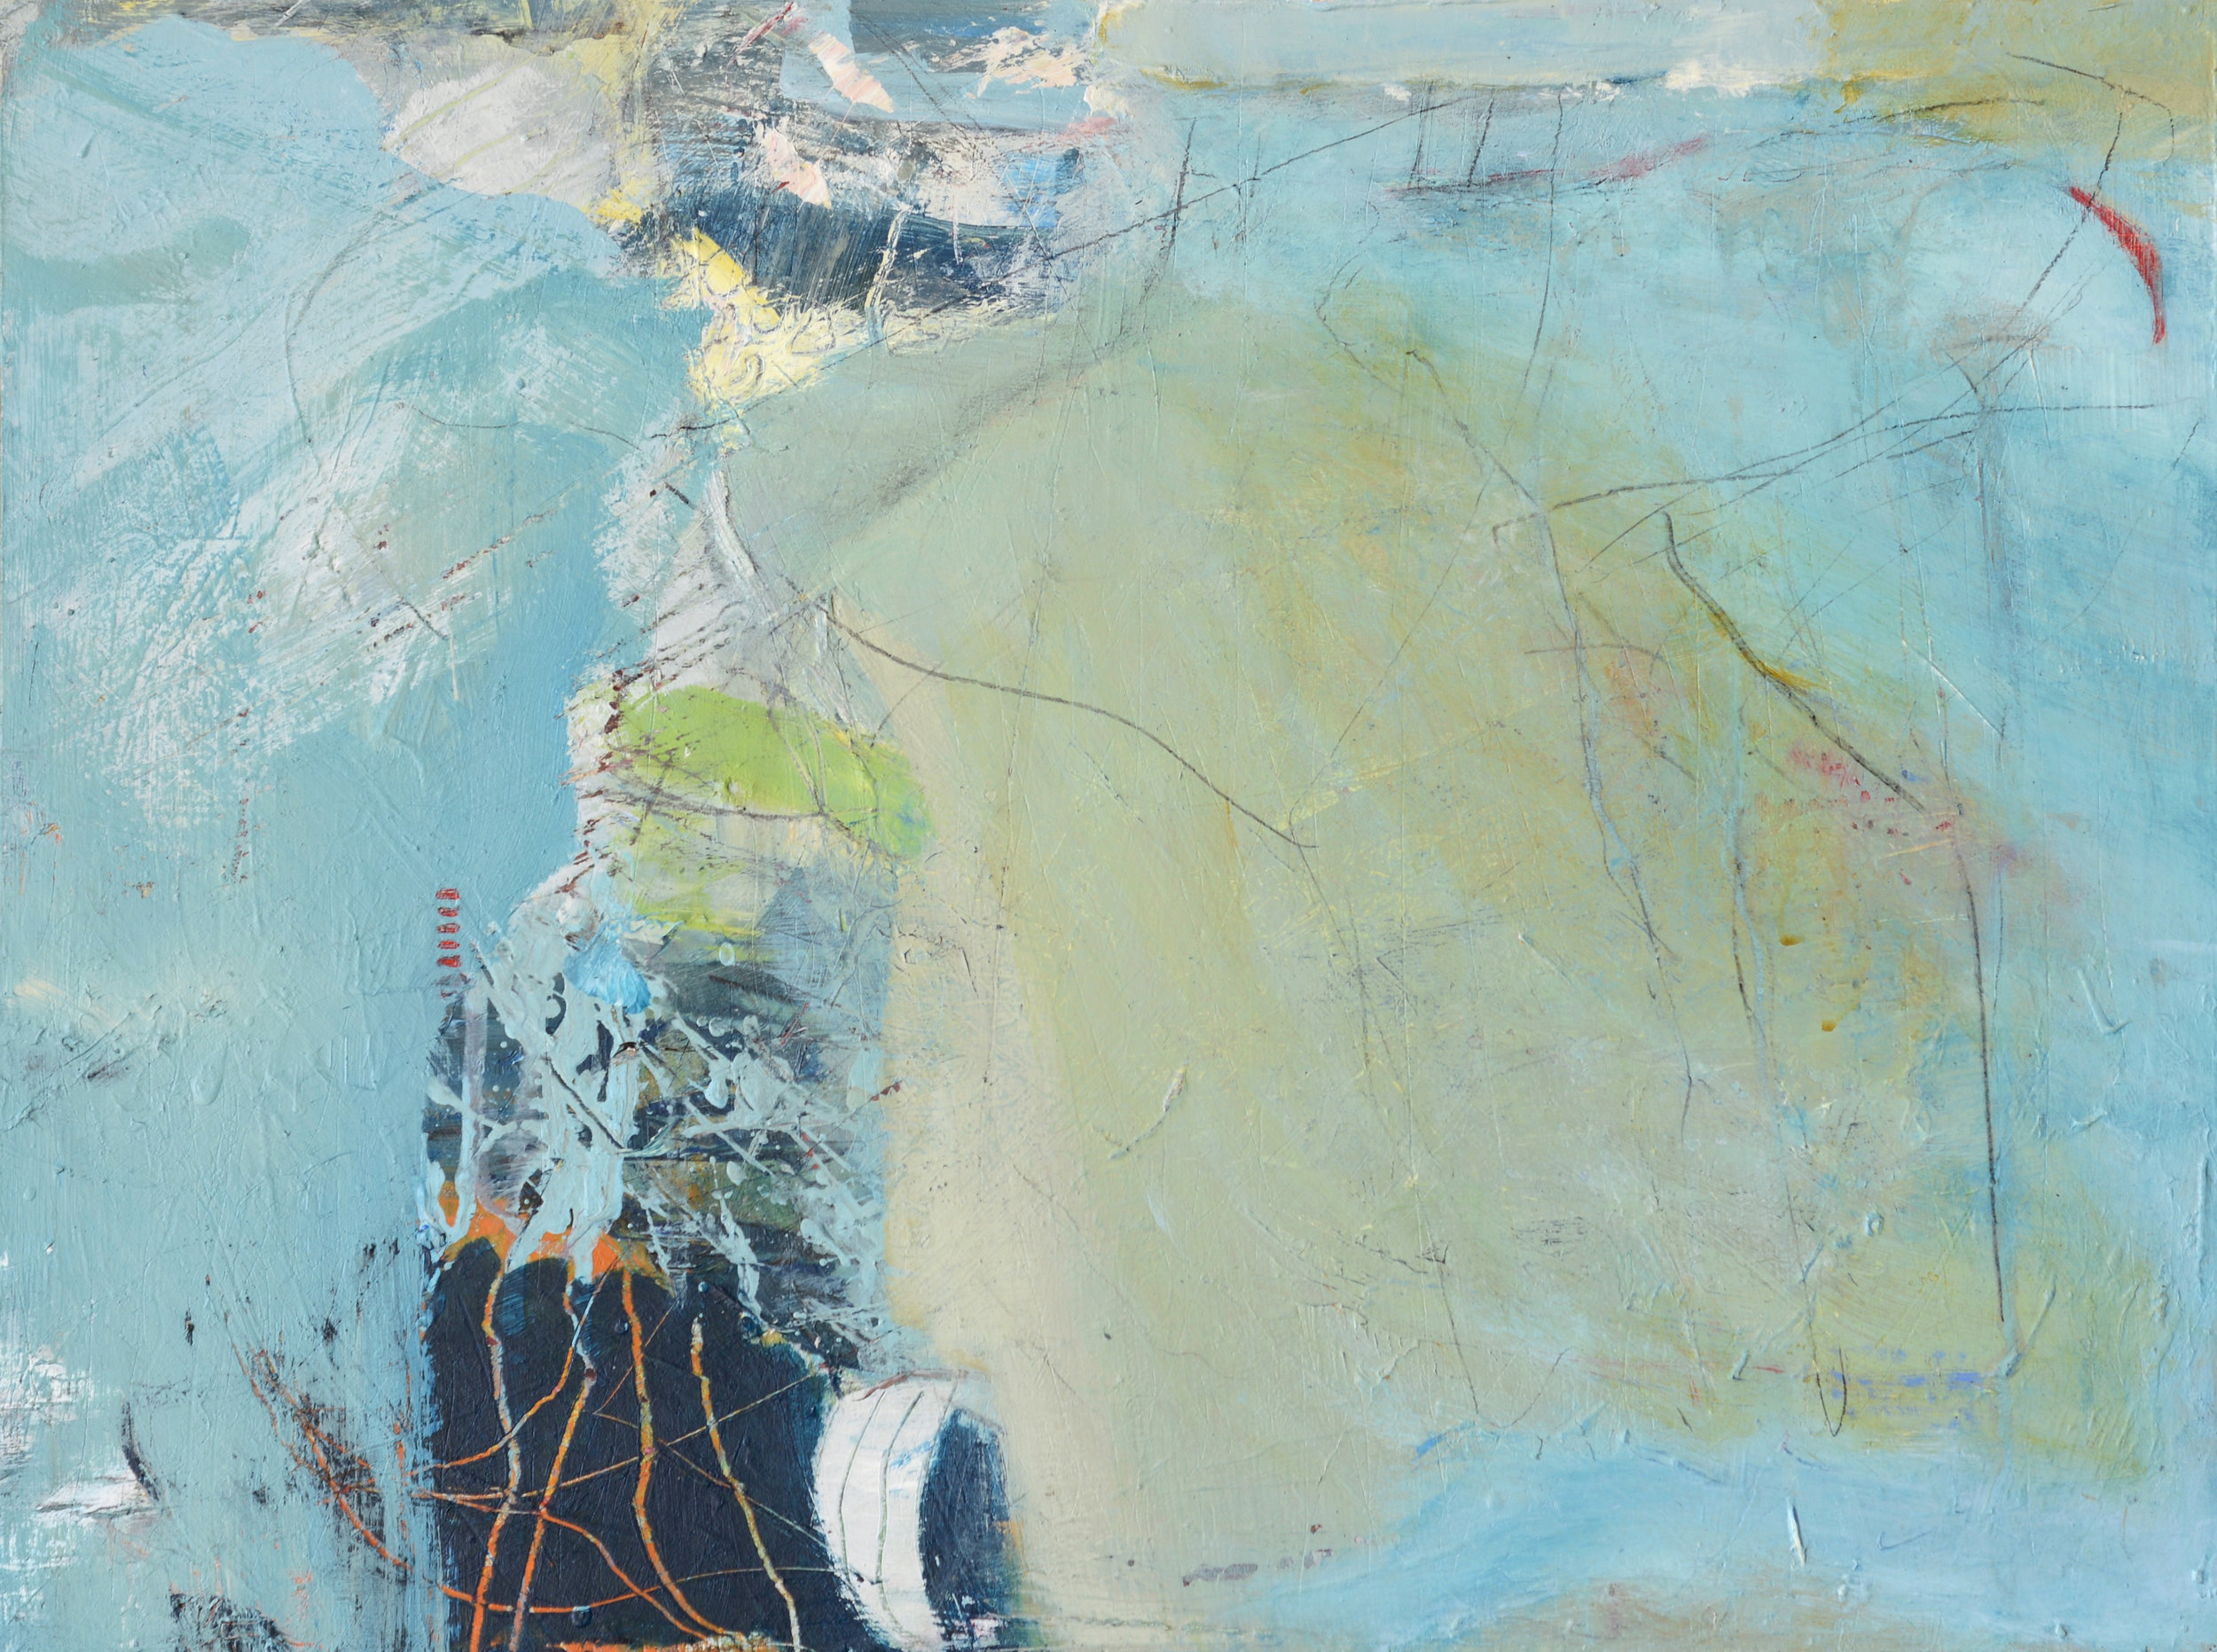 David Mankin 'End of the Land' 46 x 60 cm acrylic & mixed media on canvas £ 850